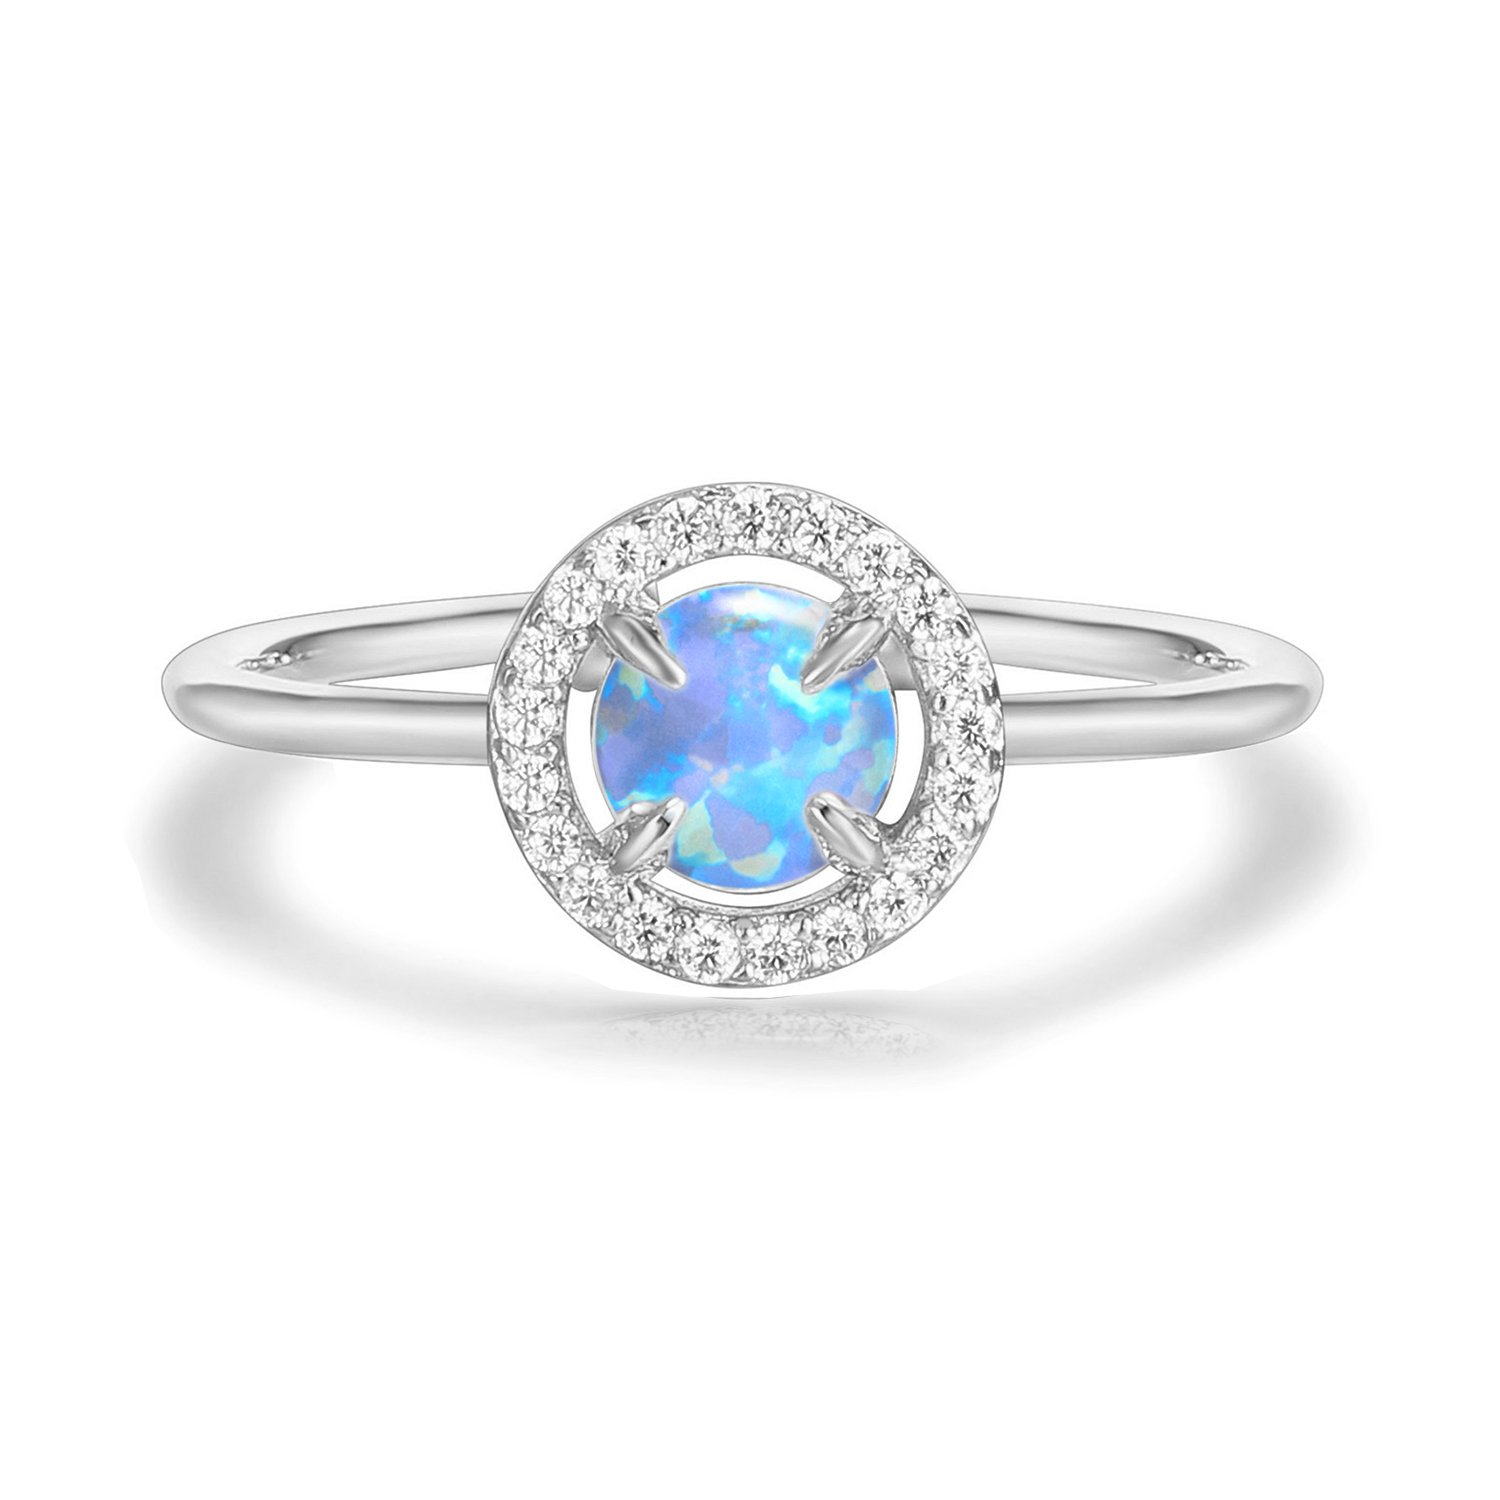 PAVOI 14K White Gold Plated CZ and Light Blue Created Opal Ring